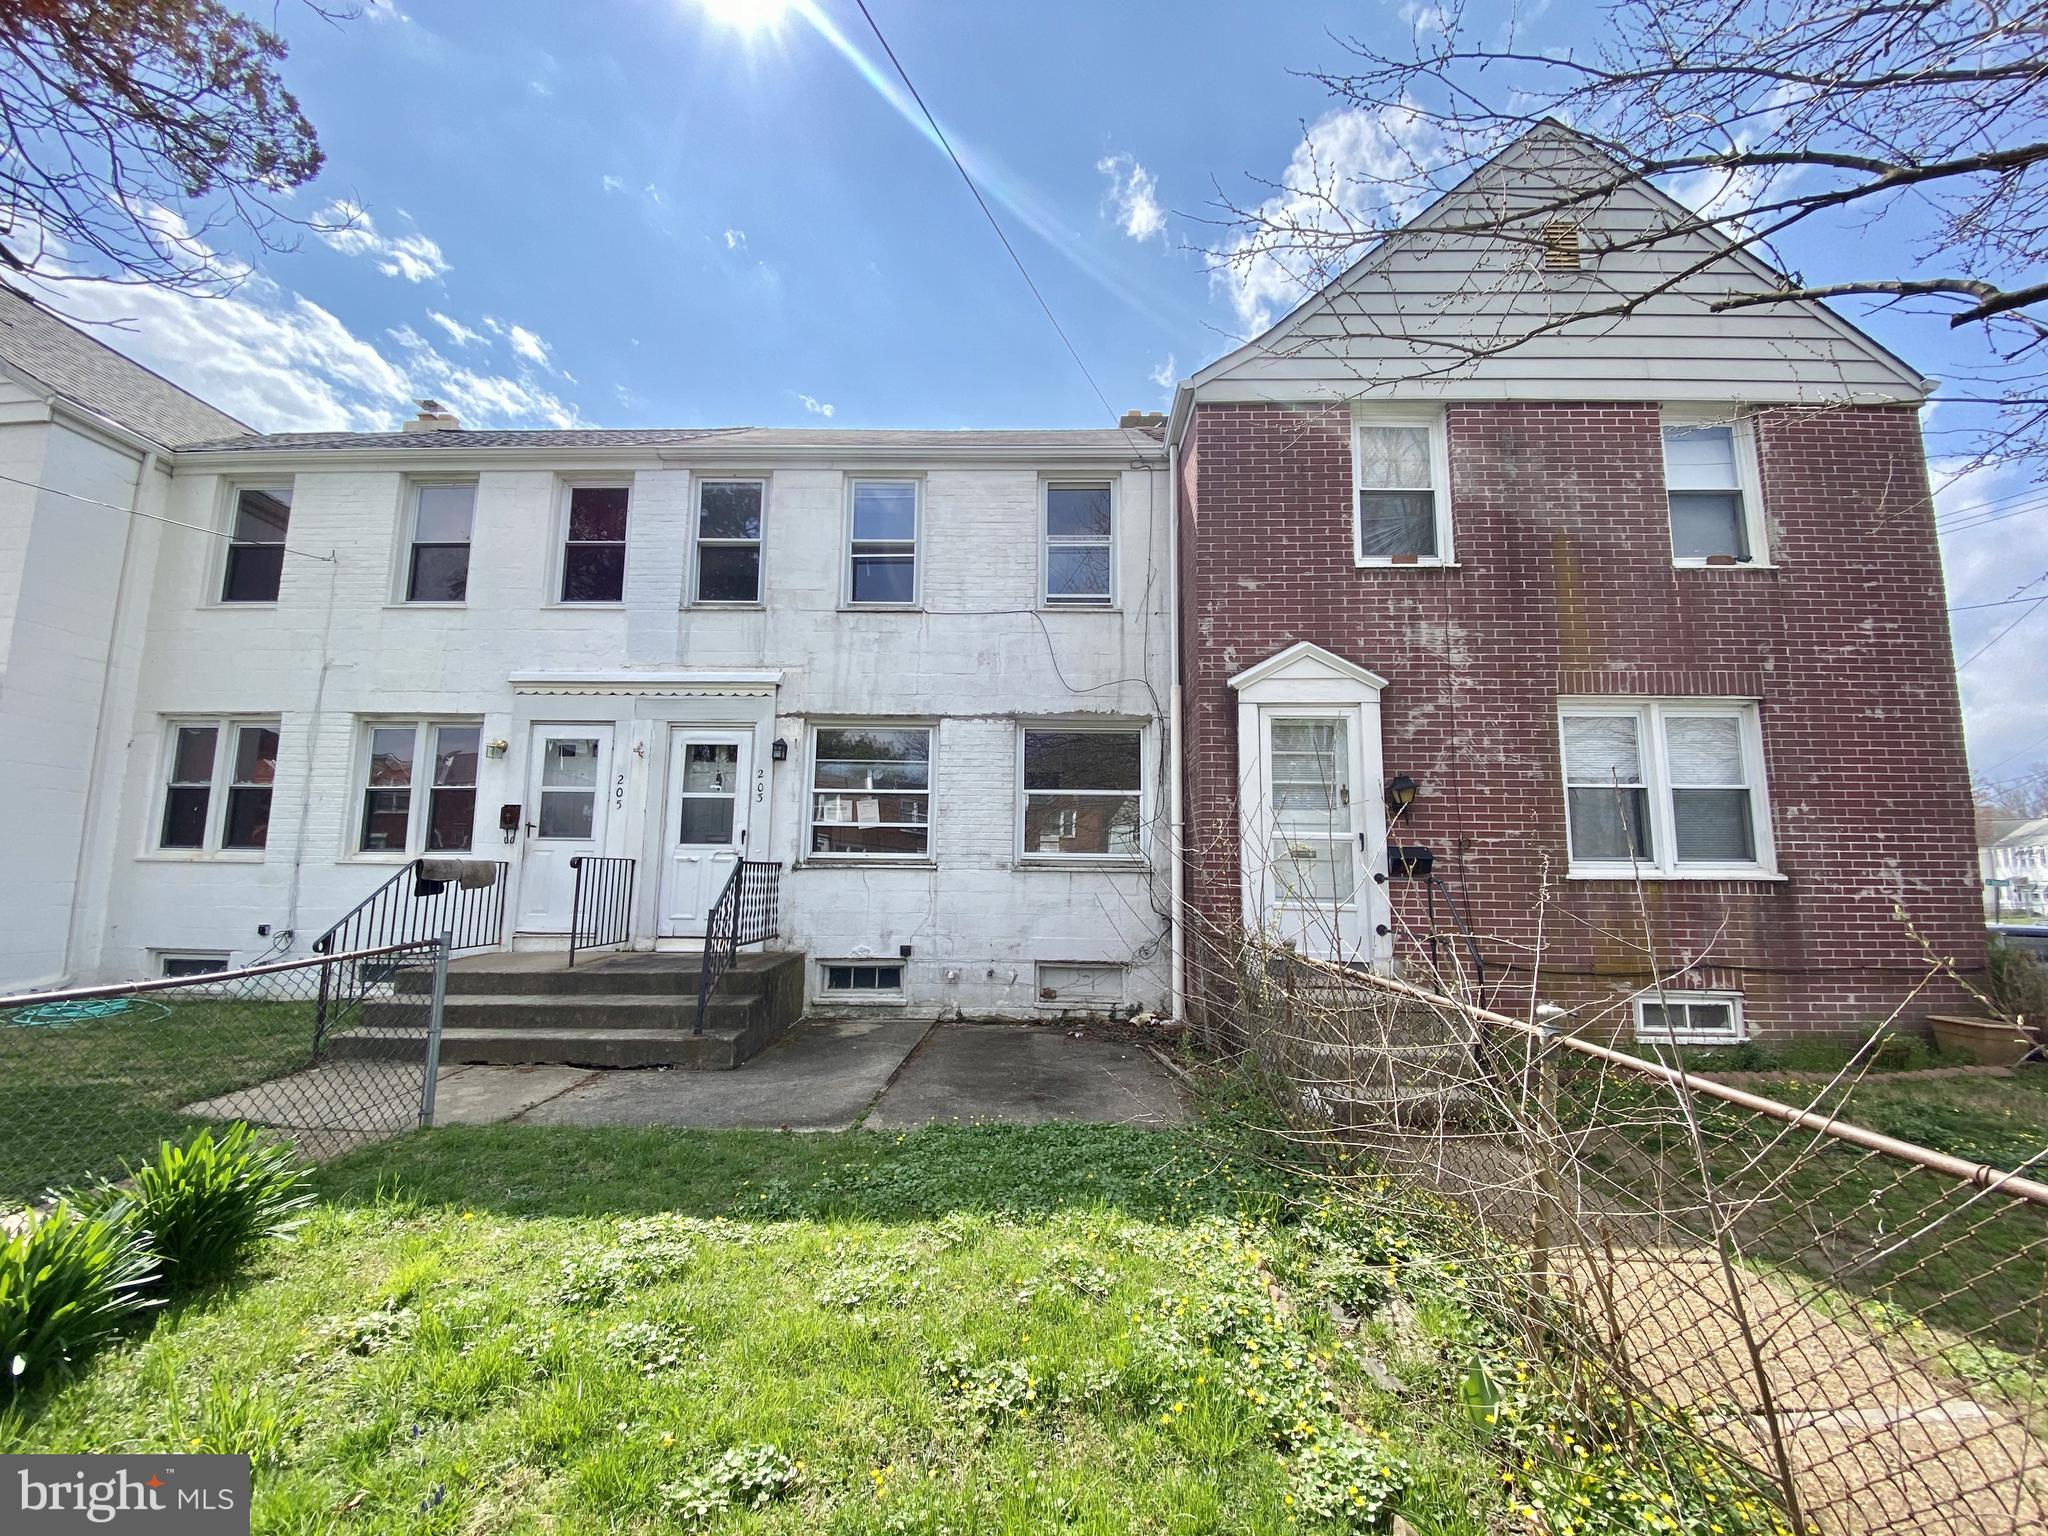 Visit this home virtually: http://www.vht.com/434052981/IDXS - This two-story brick row-home include